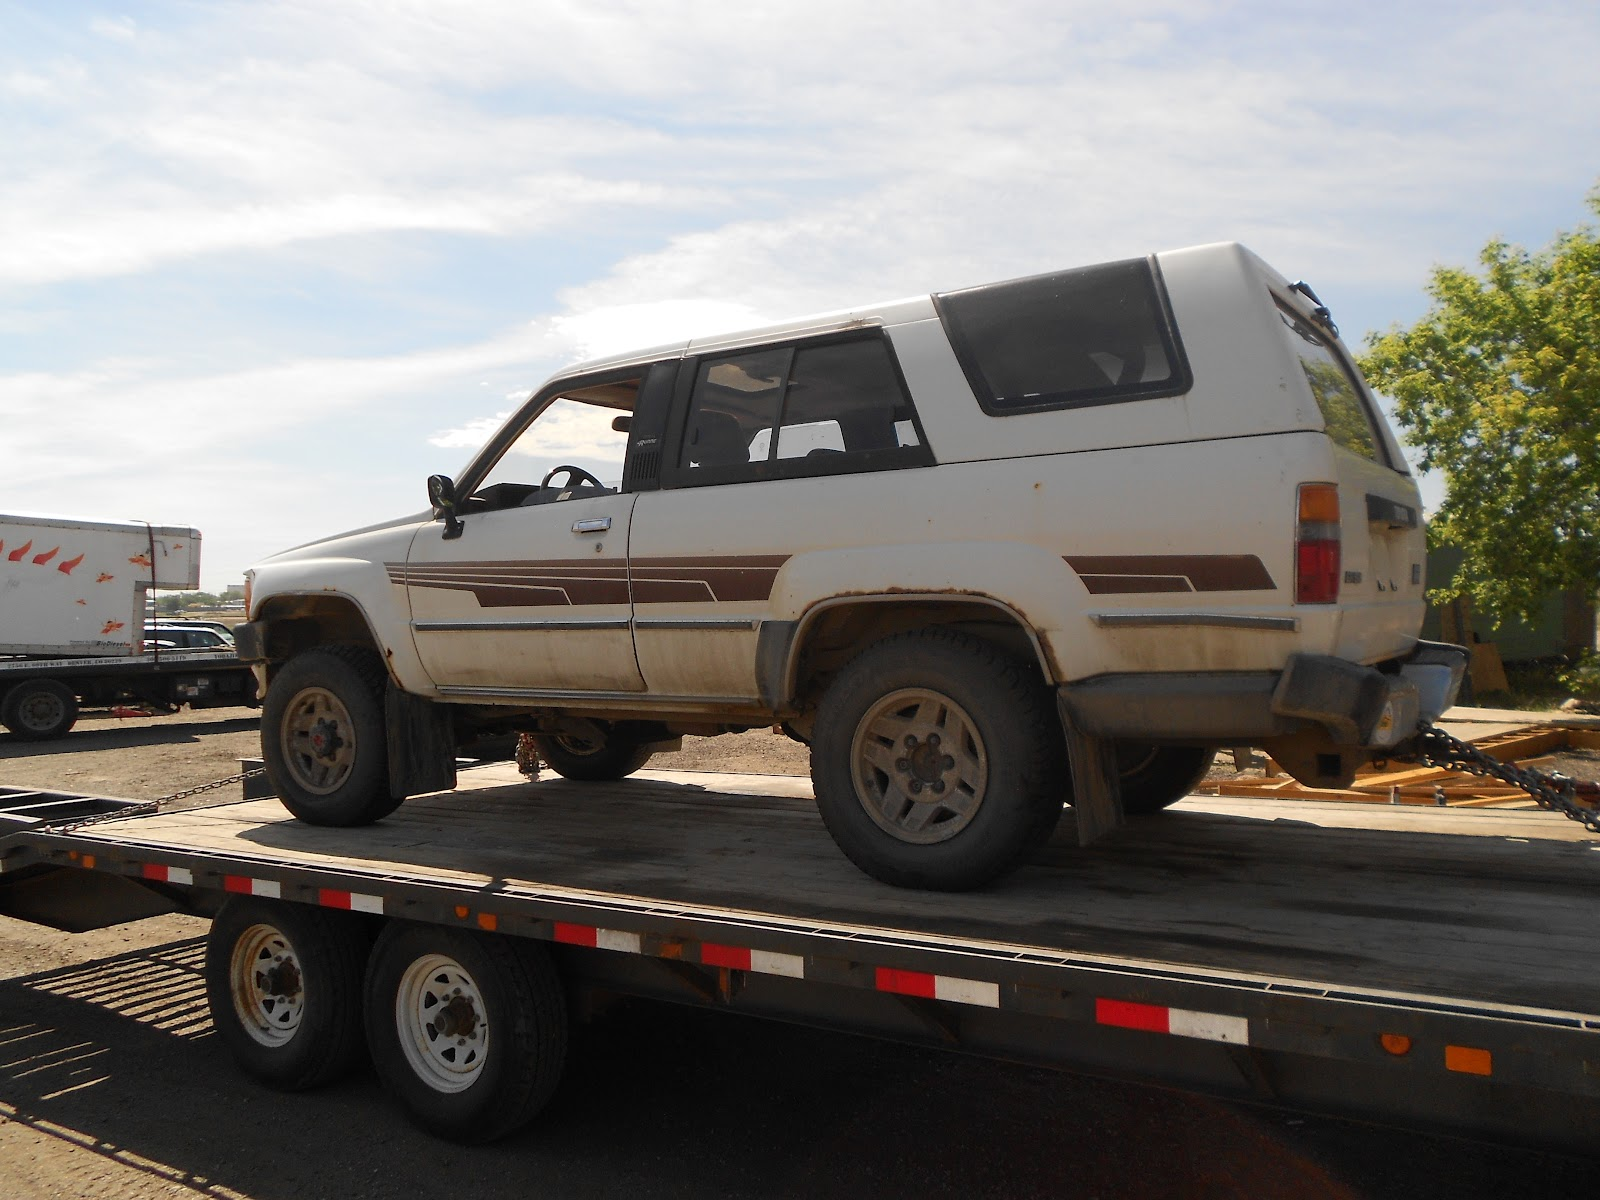 new arrivals at jim 39 s used toyota truck parts 1986 toyota 4runner 4x4. Black Bedroom Furniture Sets. Home Design Ideas